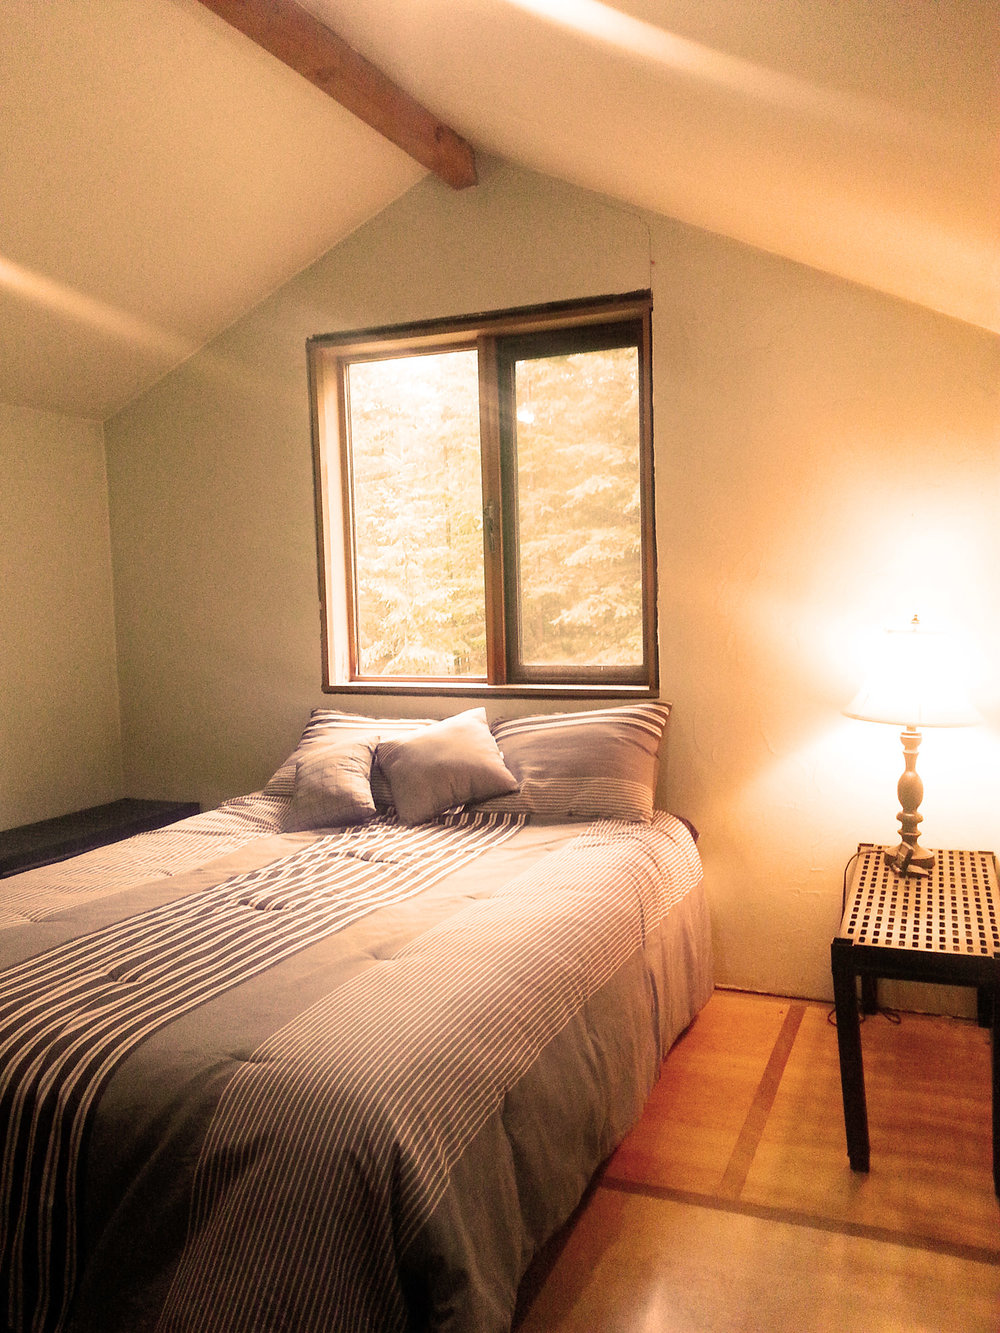 PACKAGE 1 - PRIVATE ROOM W/ SHARED BATH  Features: 3 Gourmet Meals per day, Shared Bath, Forest Views, King or Queen Size Bed  PKG 1 $1999 CDN/ per person